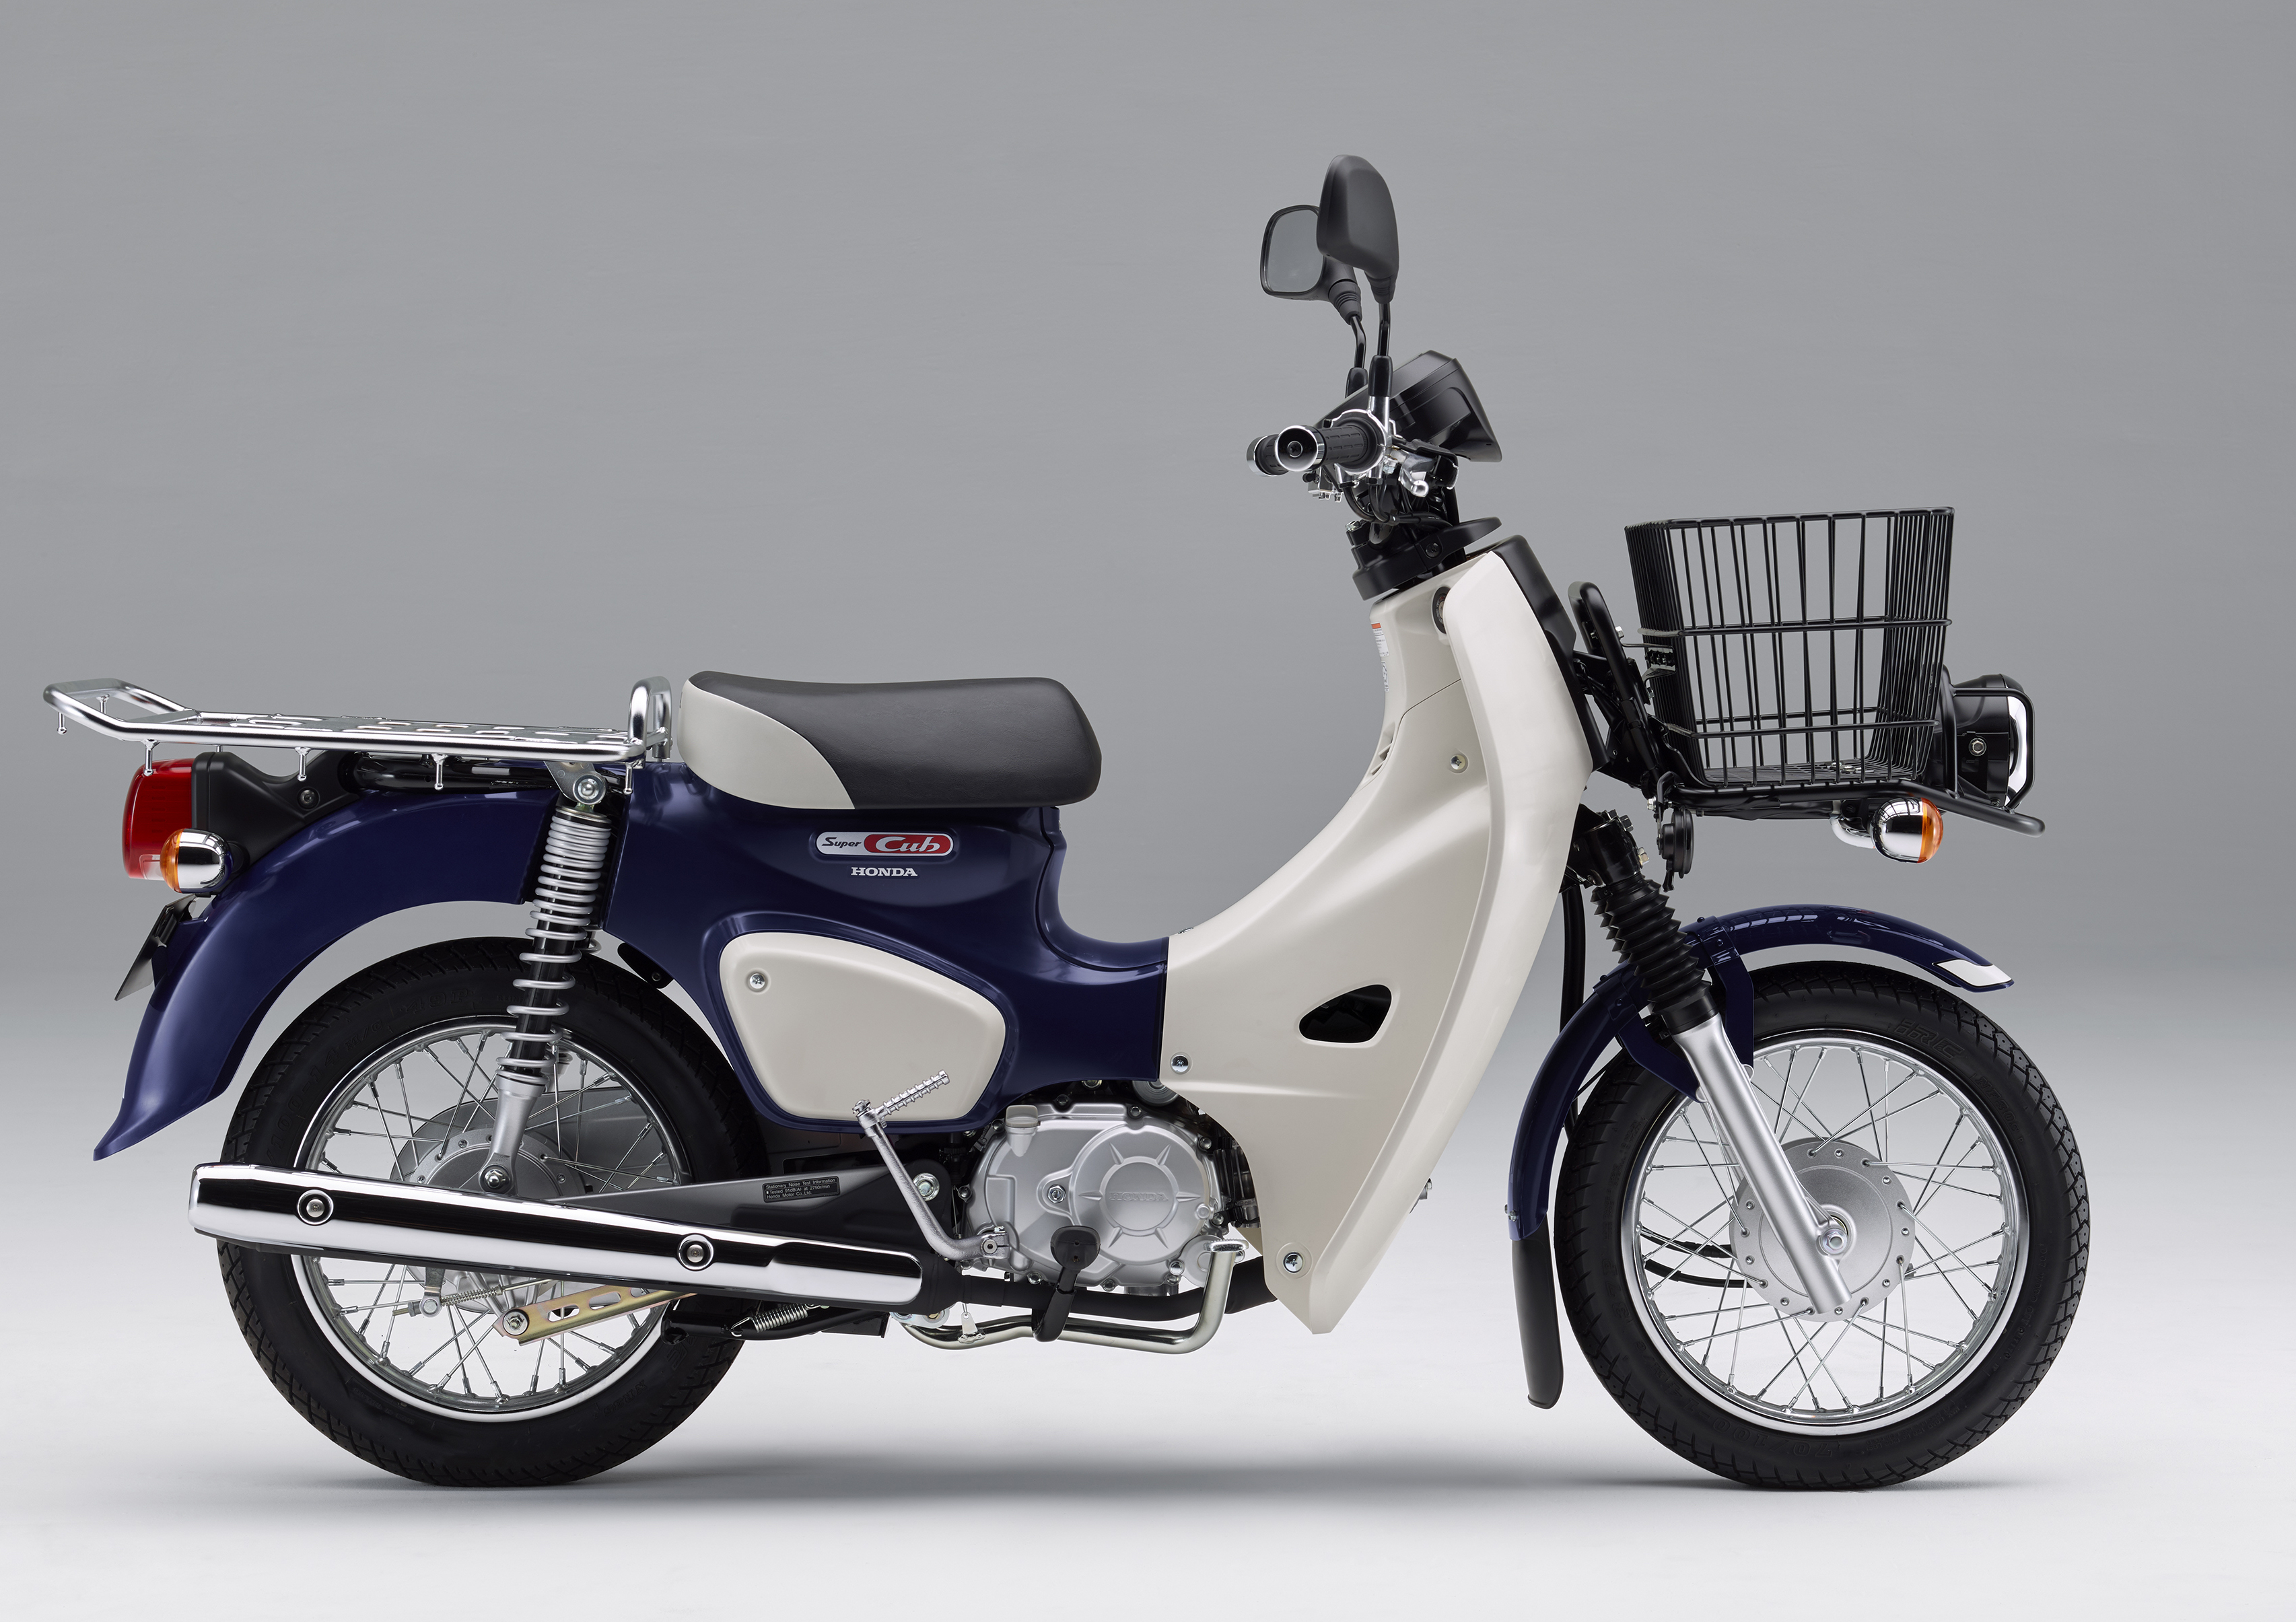 2018 Honda Super Cub 50 And 110 Production Moves To Japan With Led